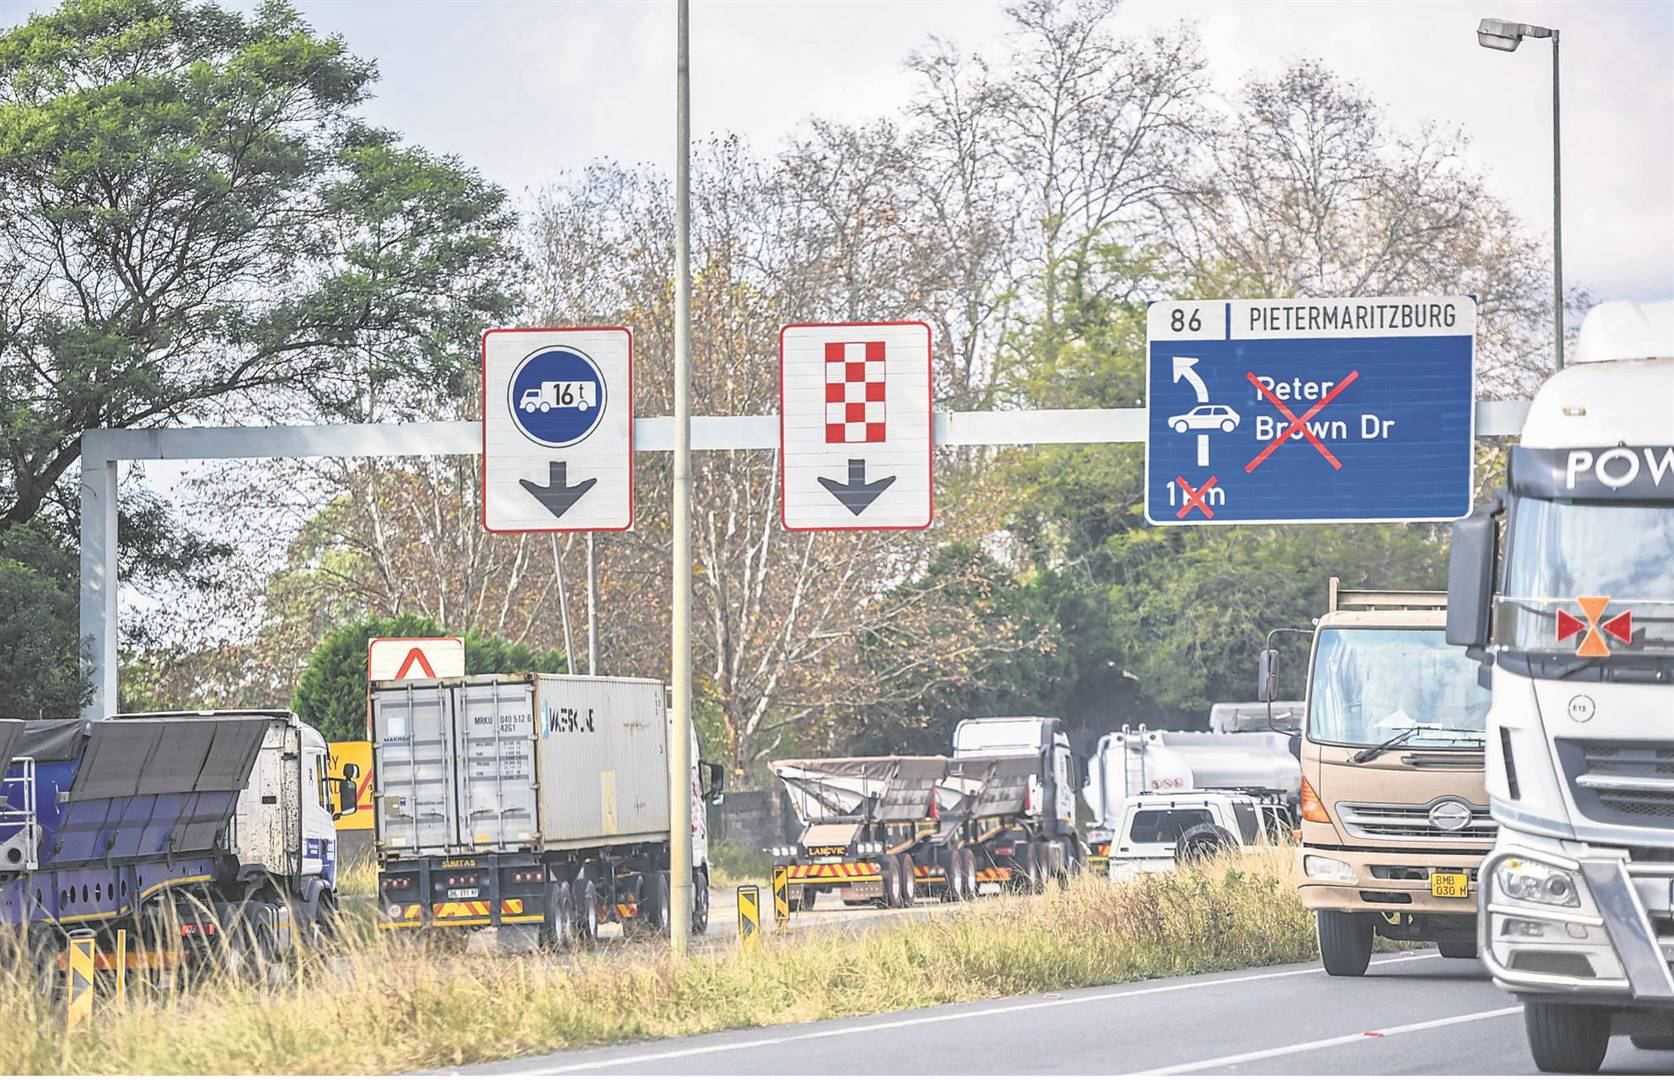 The roadworks on the N3 often bring trucks to a standstill.